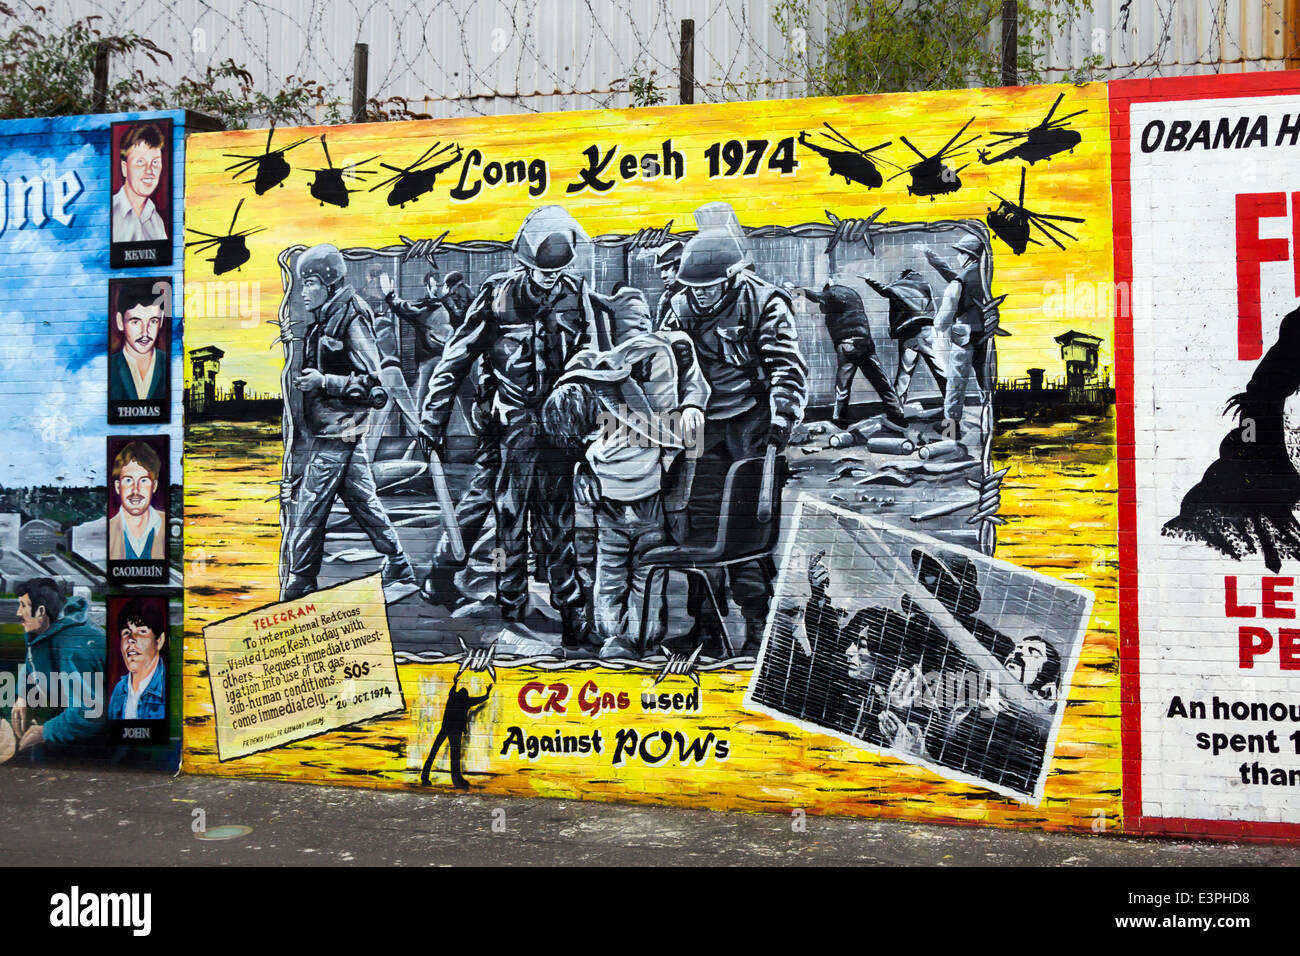 Political mural of Long Kesh Prison, Falls Road, West Belfast, County Antrim, Northern Ireland, United Kingdom. Stock Photo